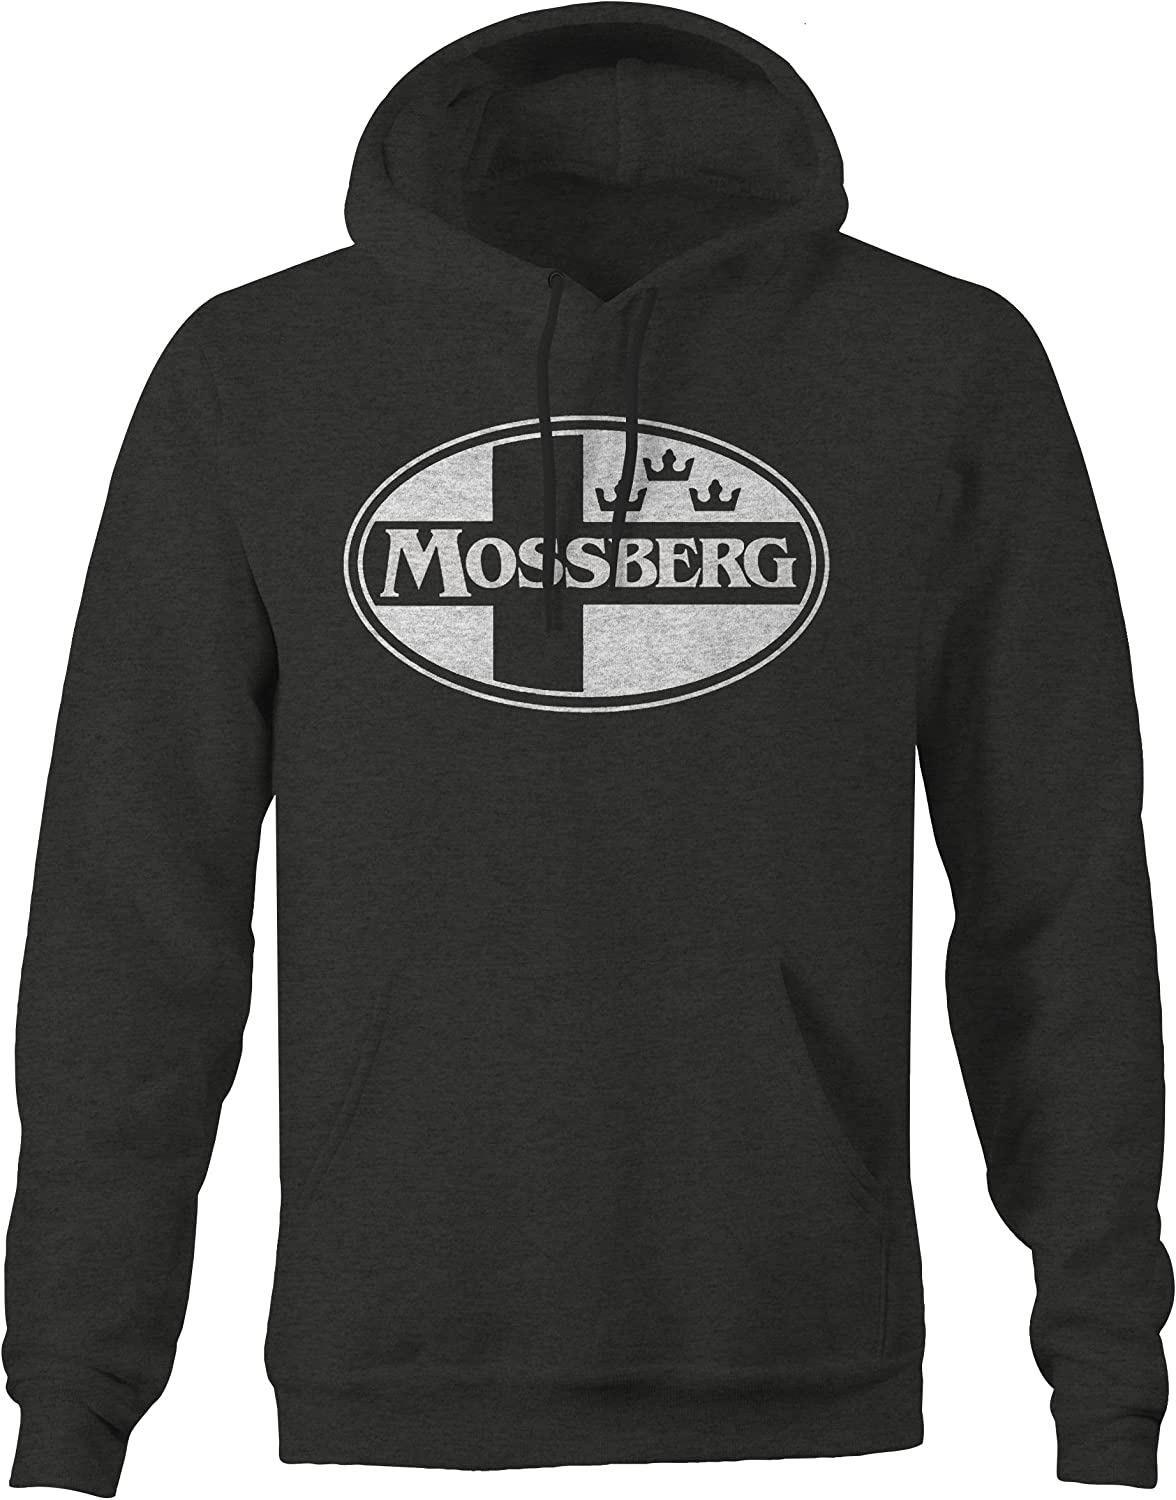 Mossberg NEW before selling Challenge the lowest price of Japan ☆ Firearms Mens Sweatshirt